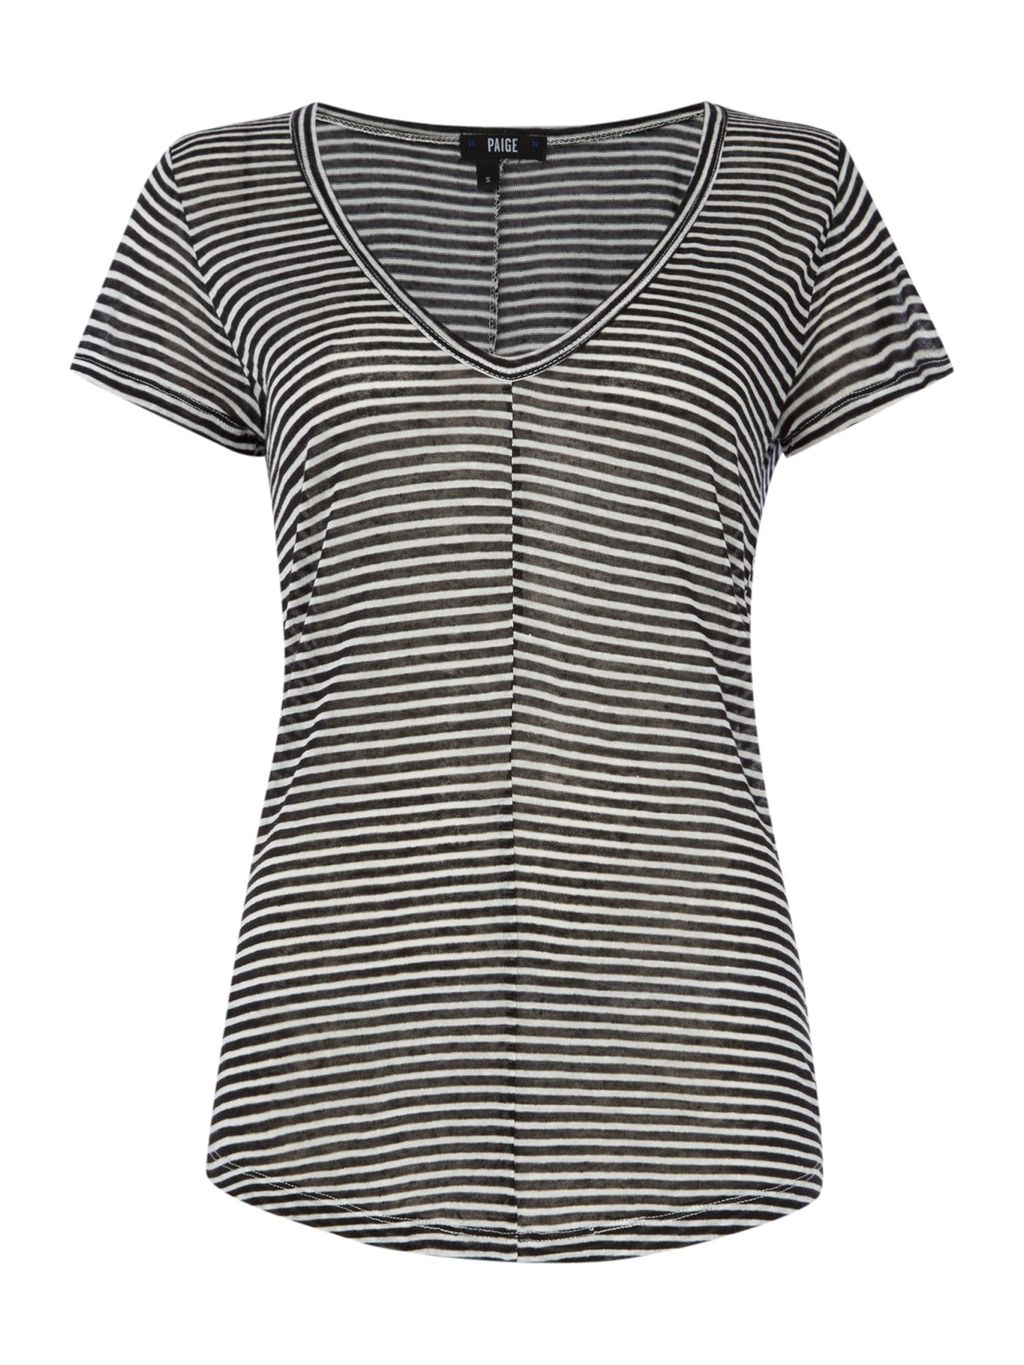 Short Sleeve Hadley Stripe Tee, Black/White - neckline: v-neck; pattern: horizontal stripes; style: t-shirt; predominant colour: white; secondary colour: black; occasions: casual; length: standard; fibres: viscose/rayon - stretch; fit: body skimming; sleeve length: short sleeve; sleeve style: standard; pattern type: fabric; pattern size: standard; texture group: jersey - stretchy/drapey; season: s/s 2016; wardrobe: basic